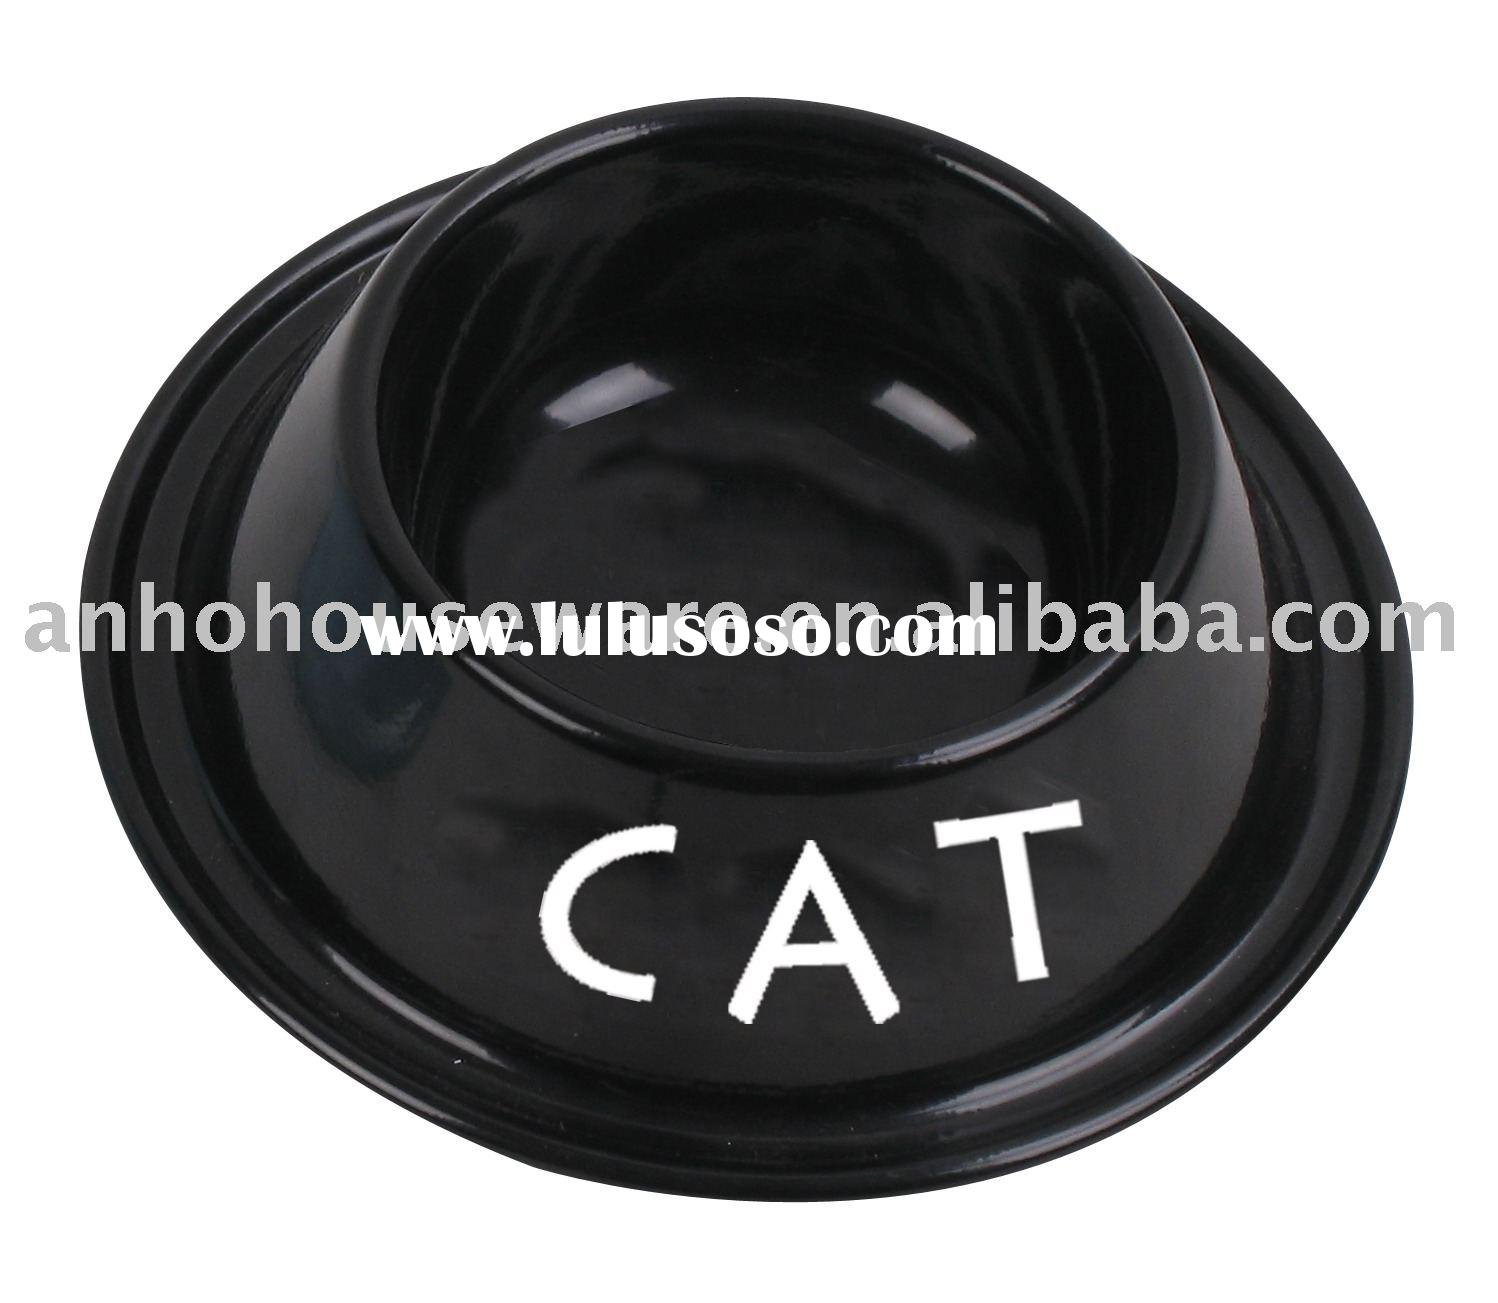 Pet Bowl ( Pet Product, Food Tray, Pet Feeder, Dog Tray, Cat Tray)